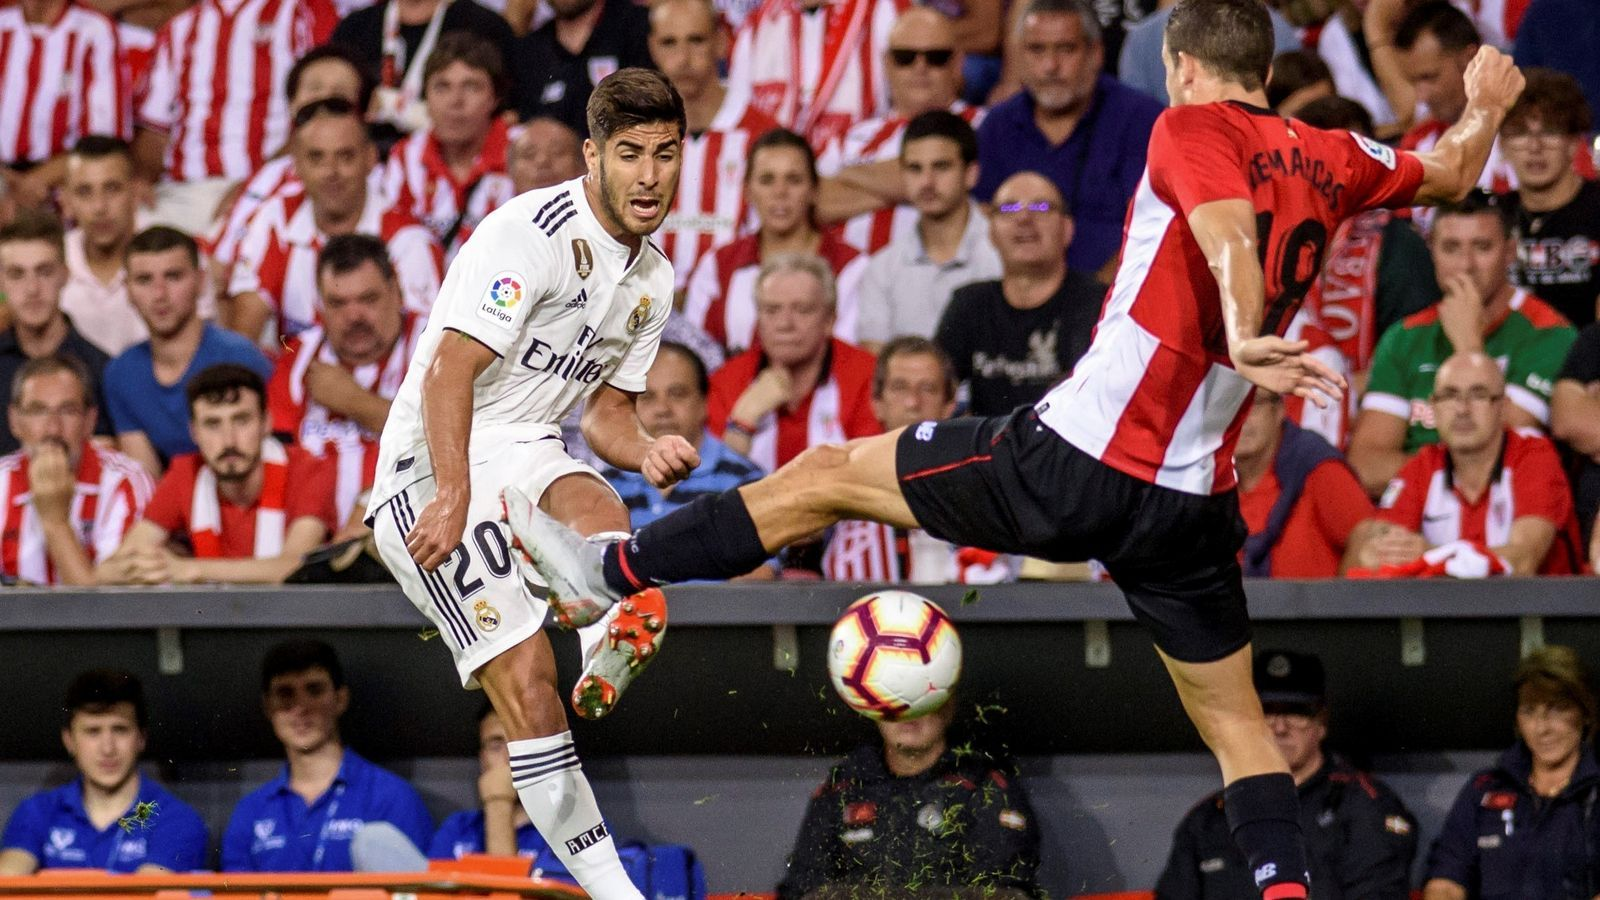 El Madrid no pot passar de l'empat contra l'Athletic a San Mamés (1-1)